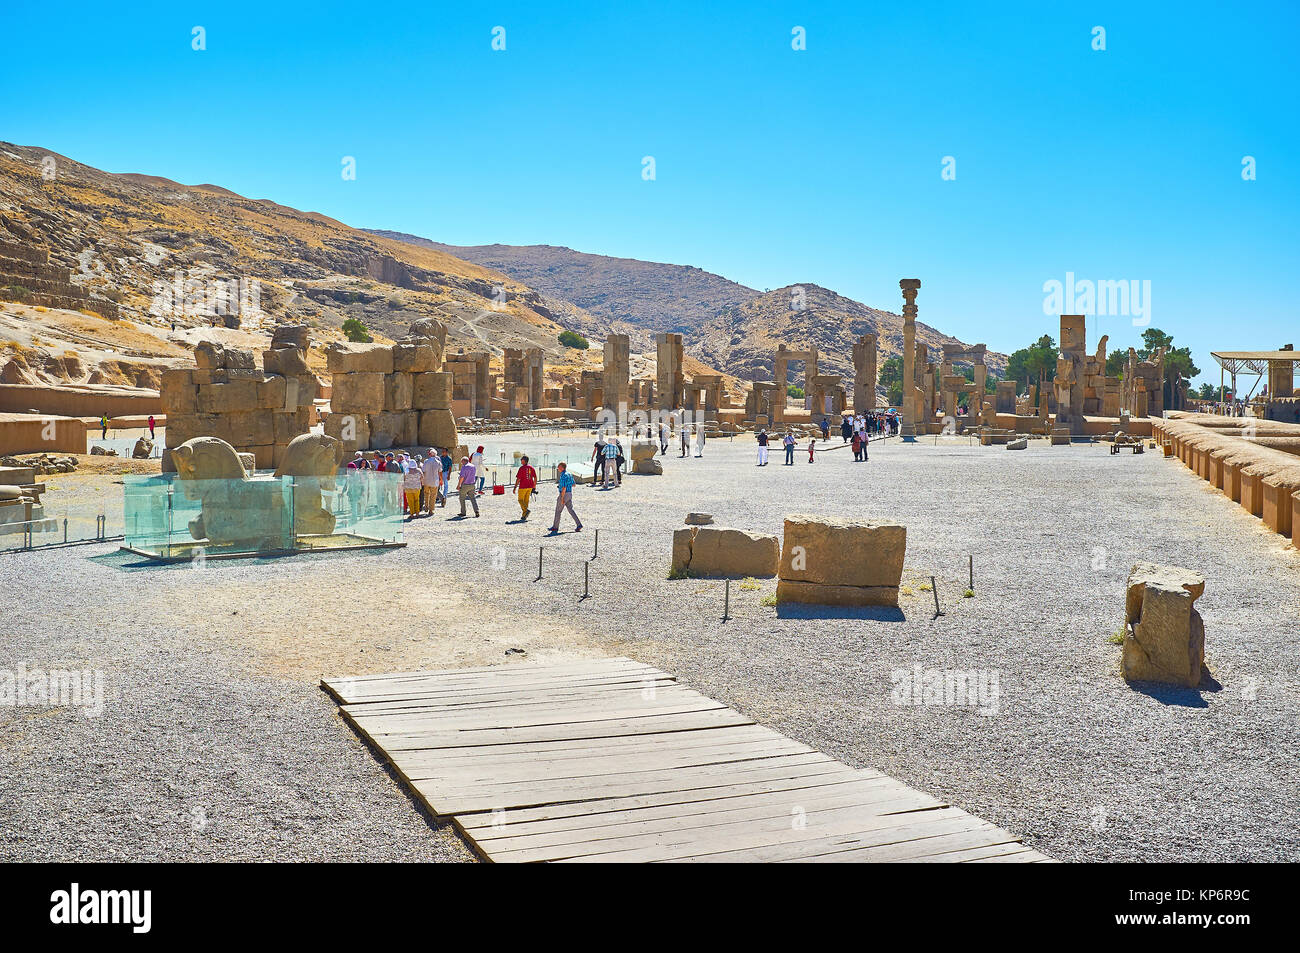 PERSEPOLIS, IRAN - OCTOBER 13, 2017: The ruins ancient of Persepolis located at the foot of Rahmet mount (Mountain Stock Photo